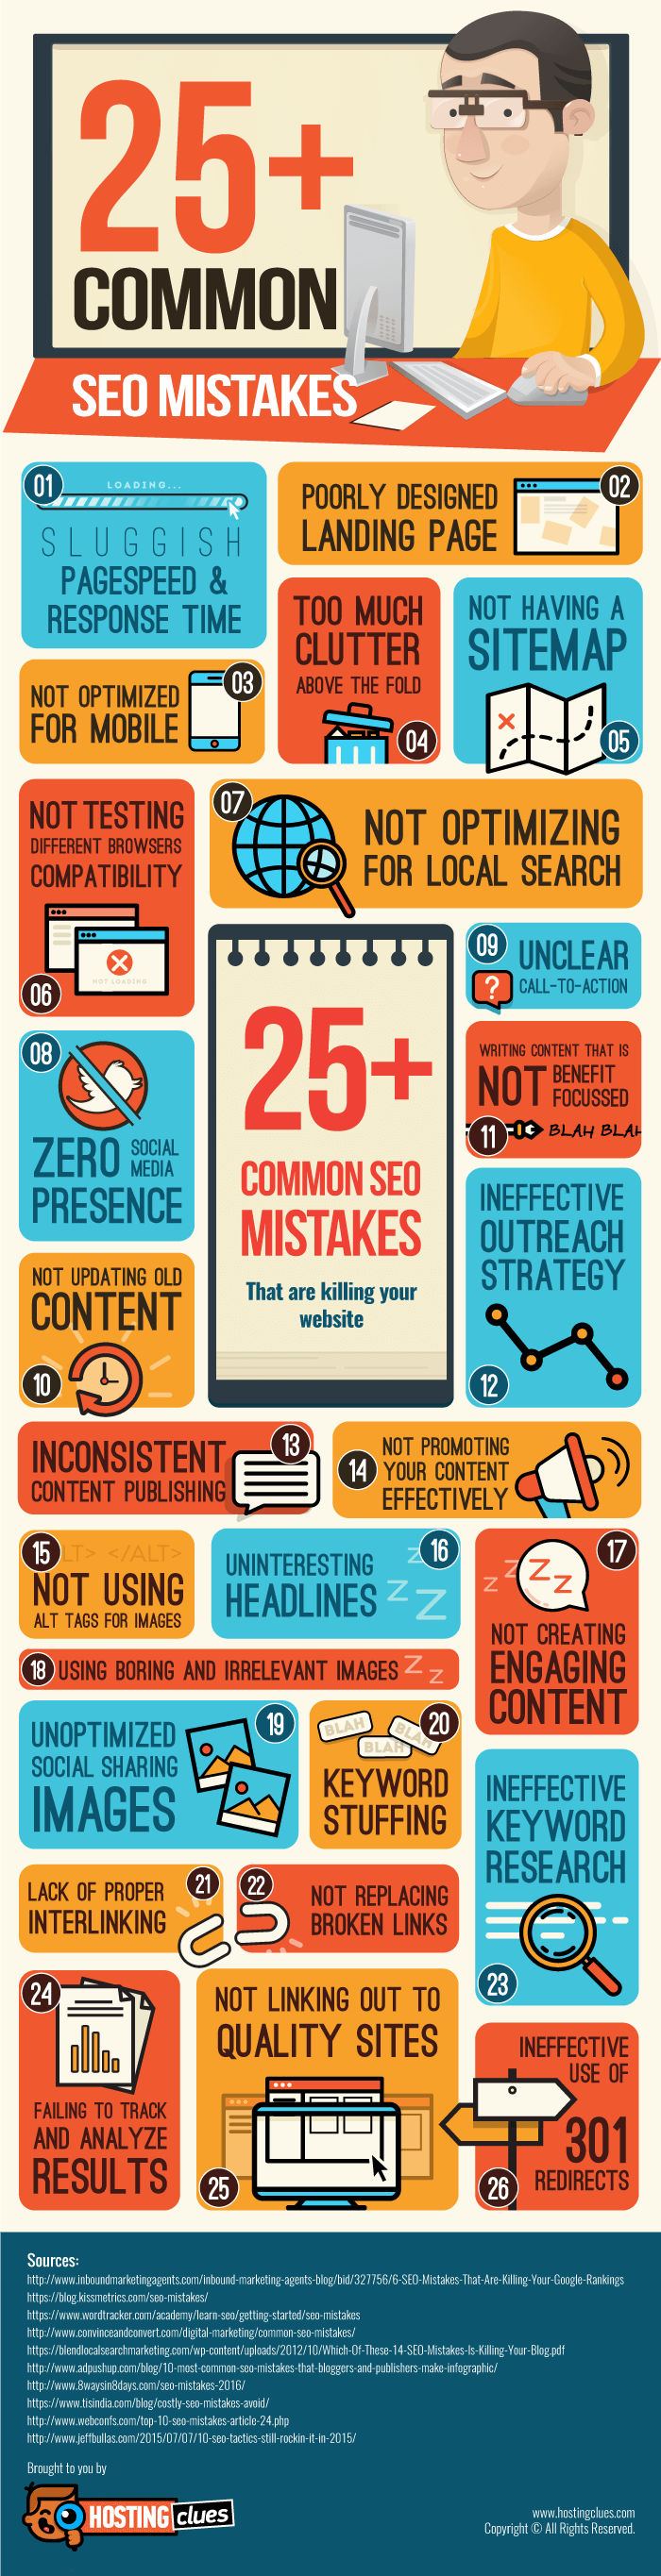 Common-SEO-Mistakes-Infographic (1).png